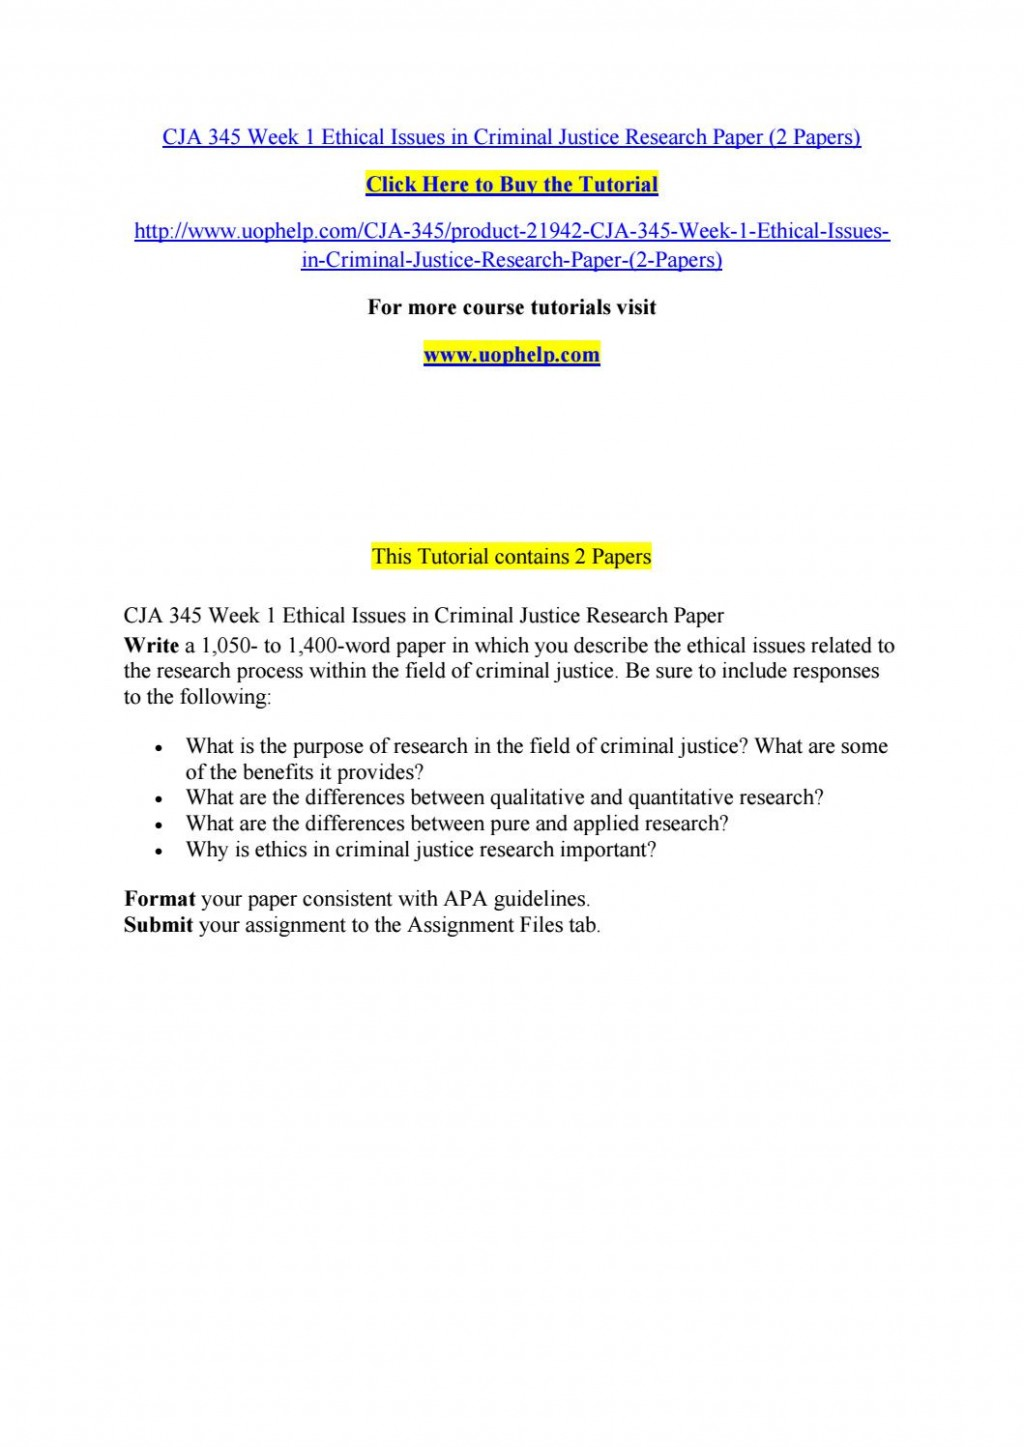 005 Research Paper Criminal Justice Papers Page 1 Formidable Examples Of Free Large